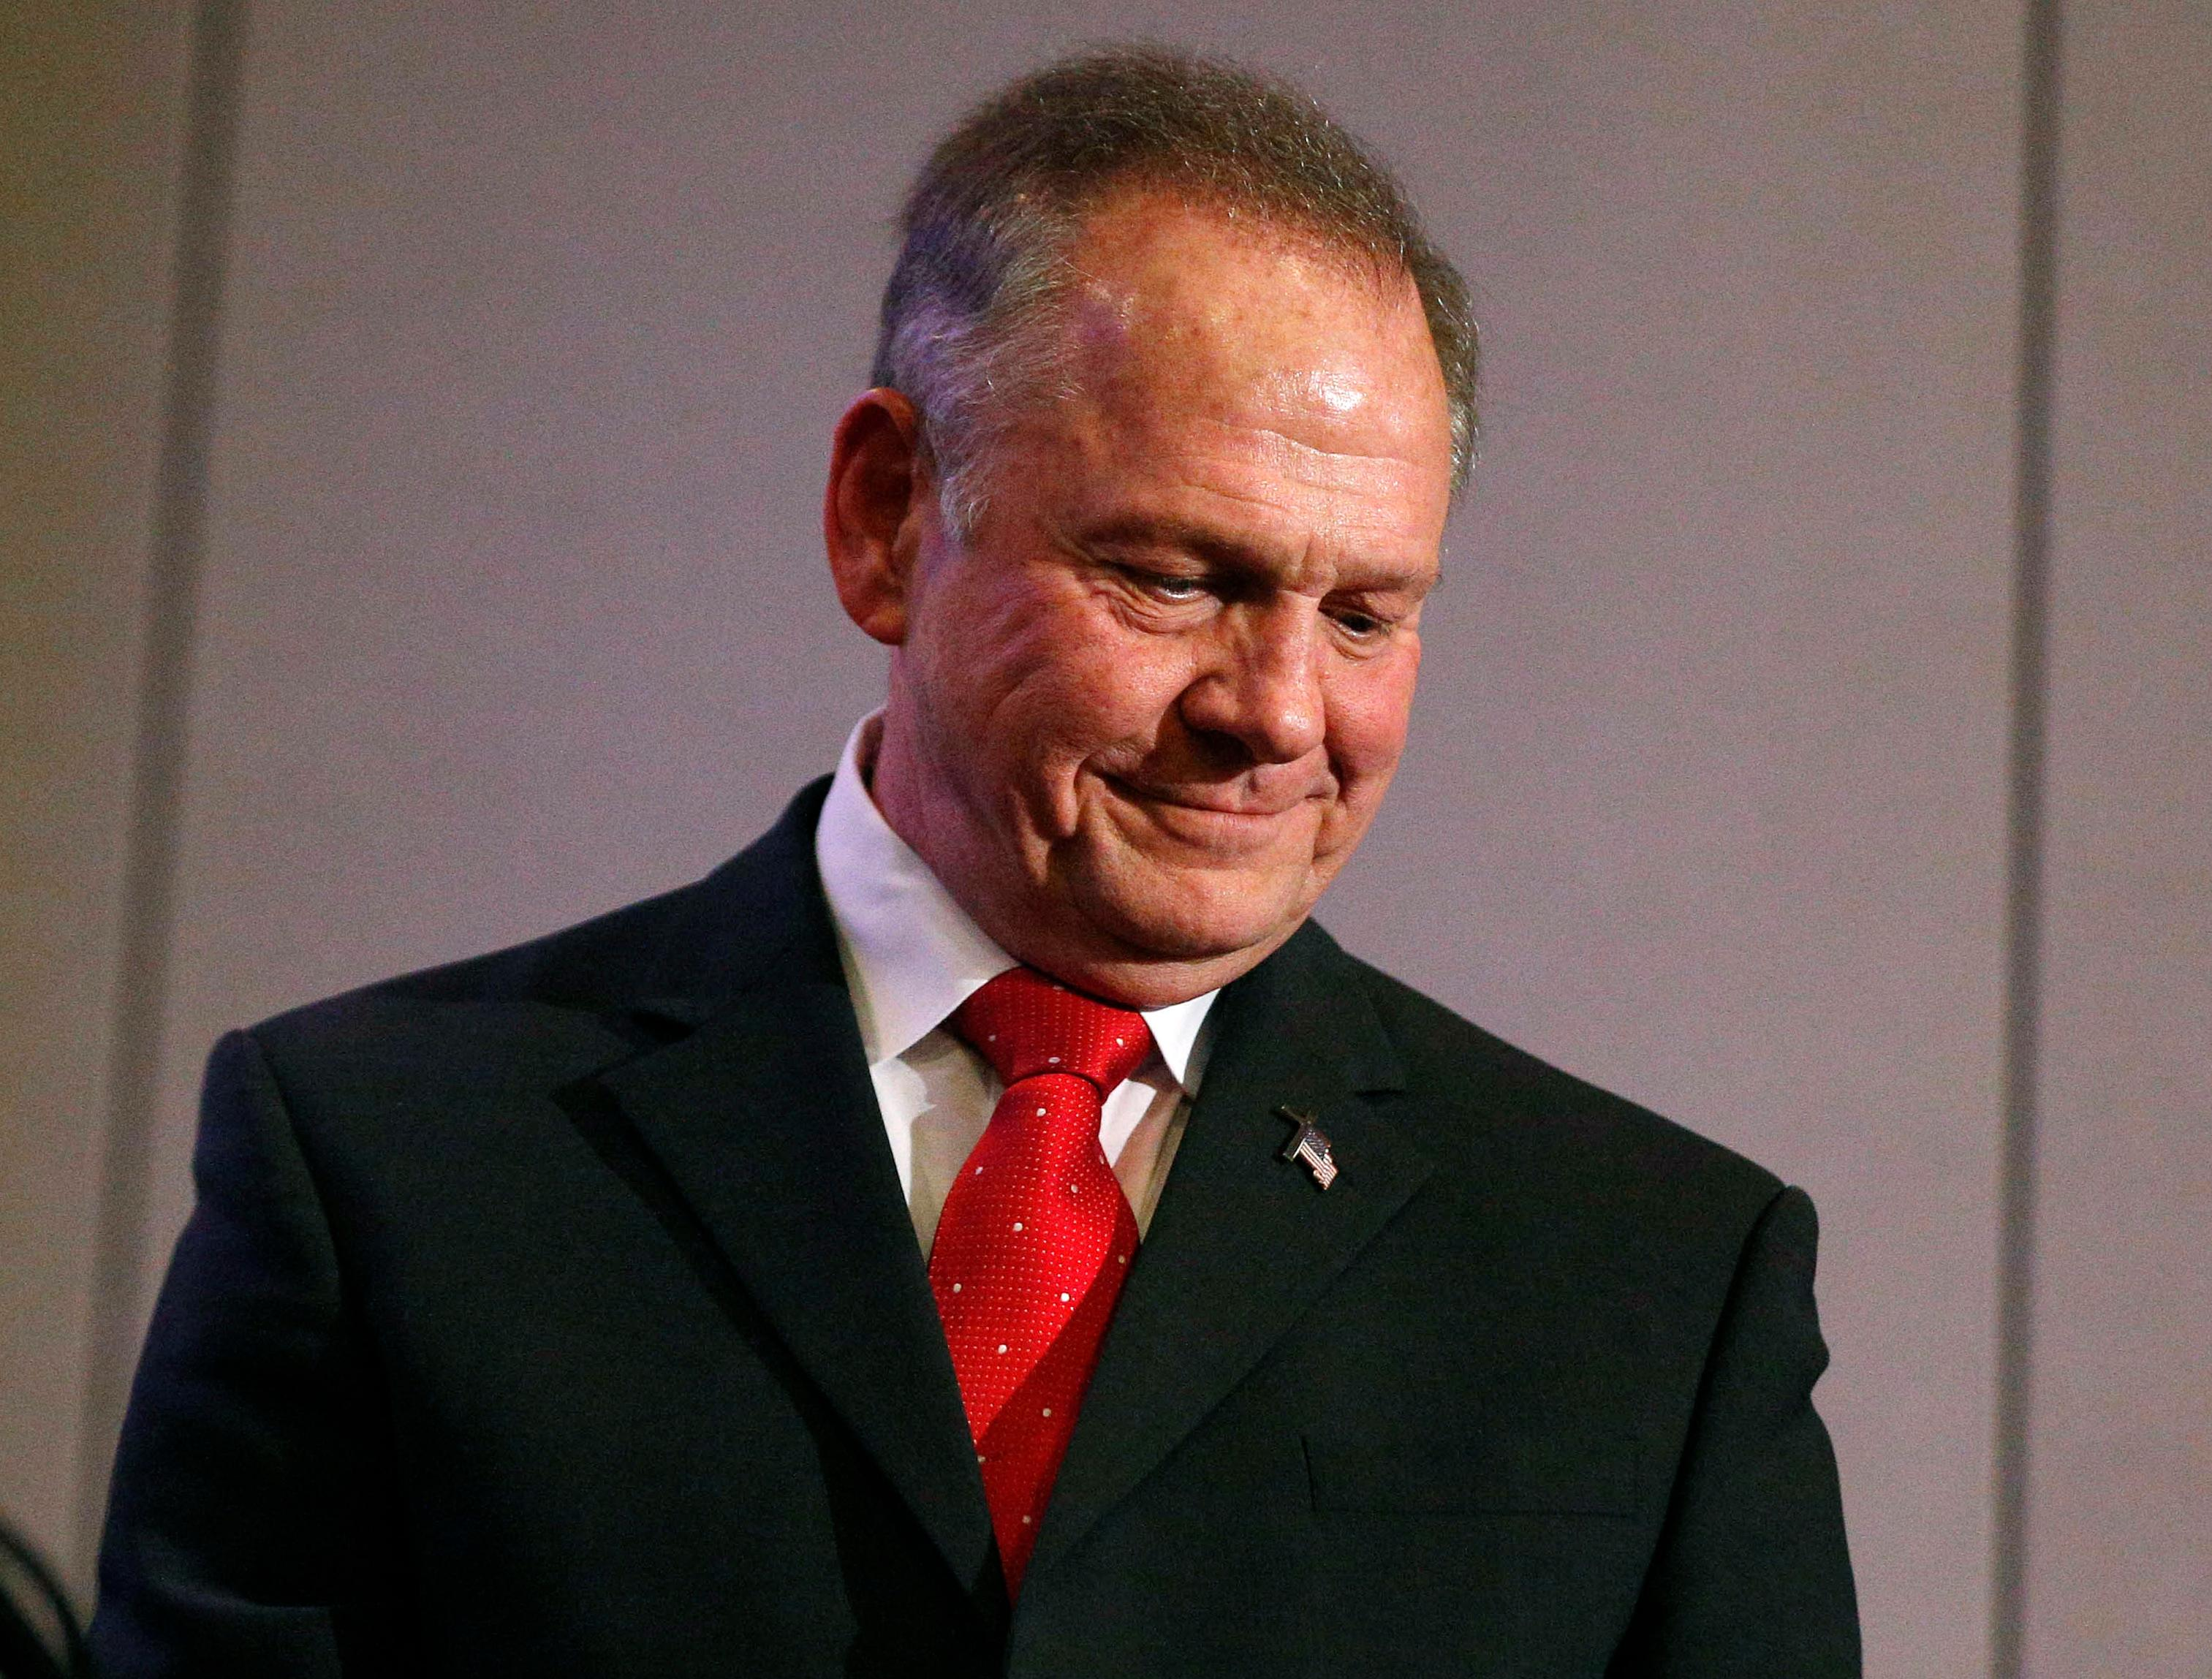 Former Alabama Chief Justice and U.S. Senate candidate Roy Moore pauses as he attends at a news conference, Thursday, Nov. 16, 2017, in Birmingham, Ala. (AP Photo/Brynn Anderson)